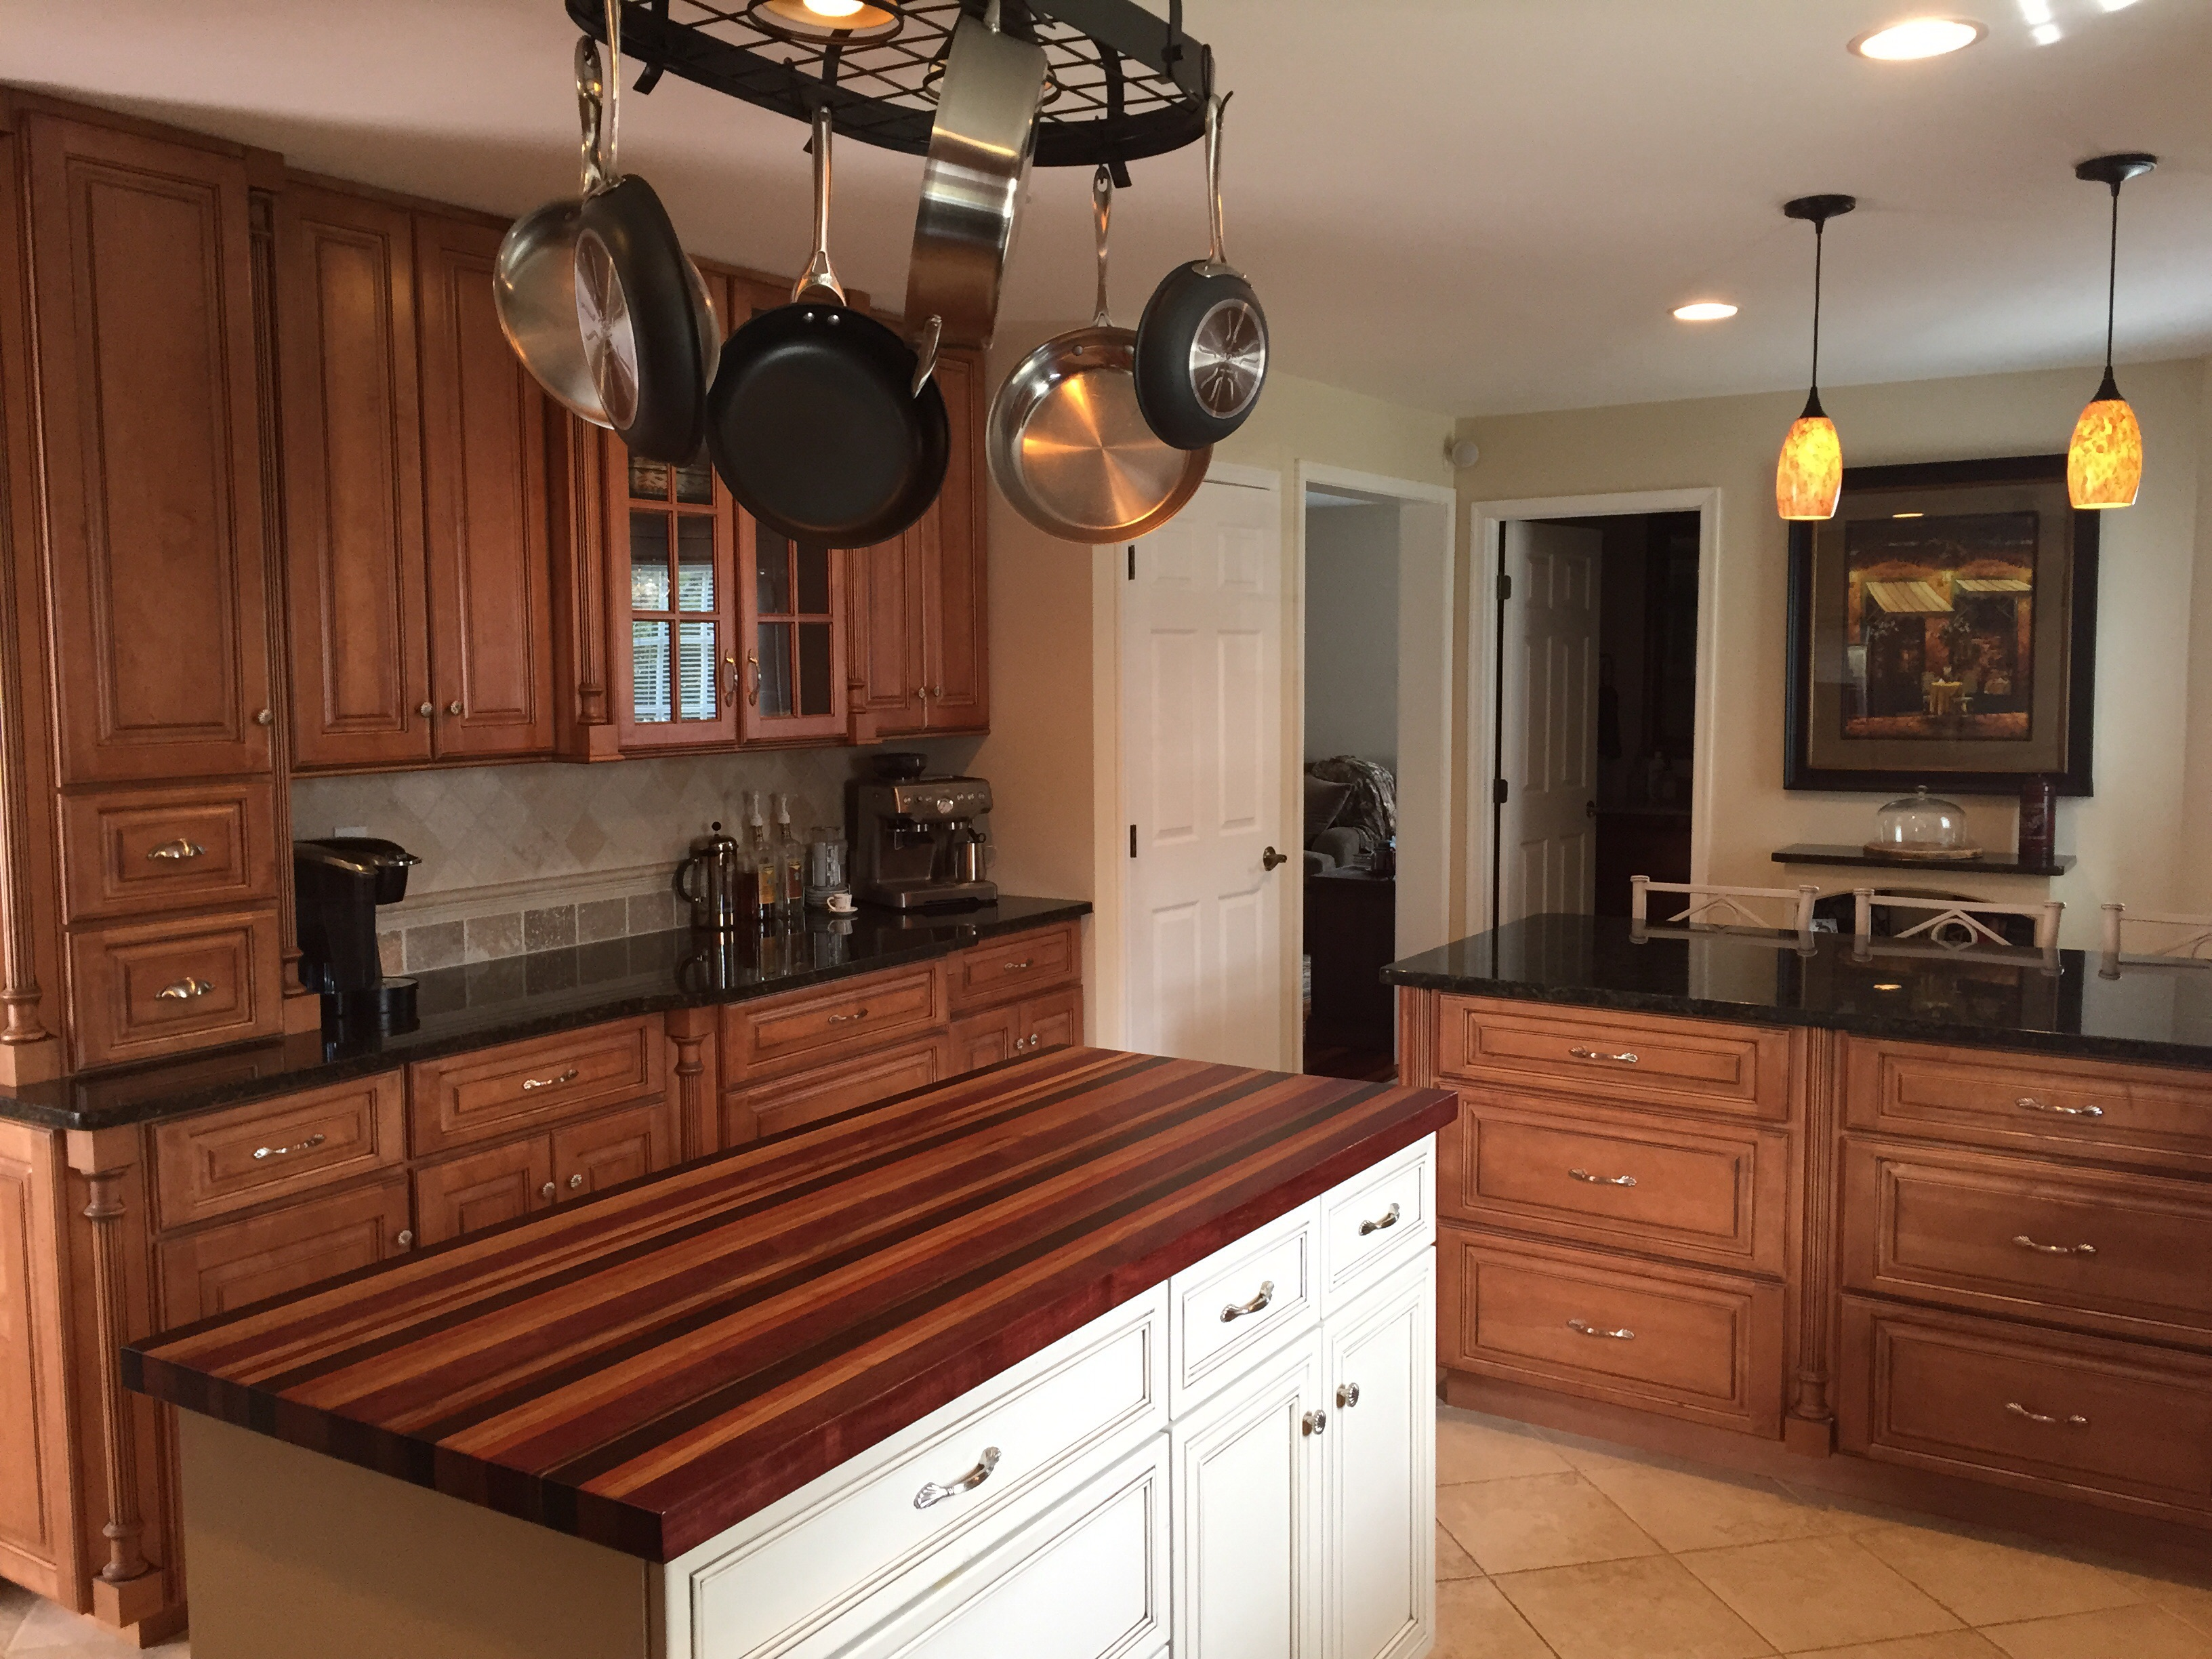 Kitchen Cabinets Voorhees Nj